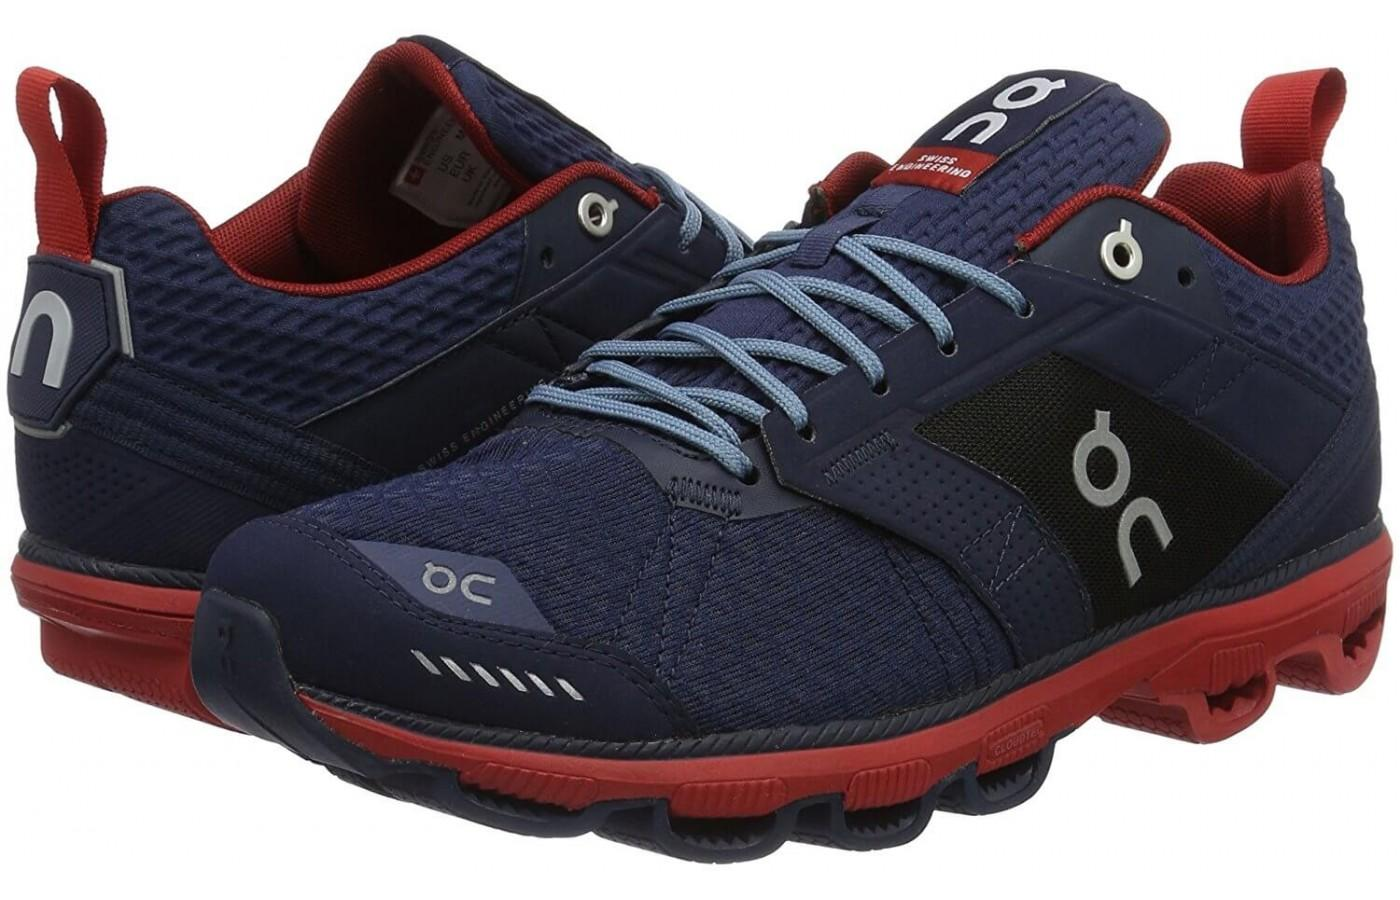 On Cloudcruiser is a great running shoe for runners that need more cushioning and comfort in their moderately paced runs